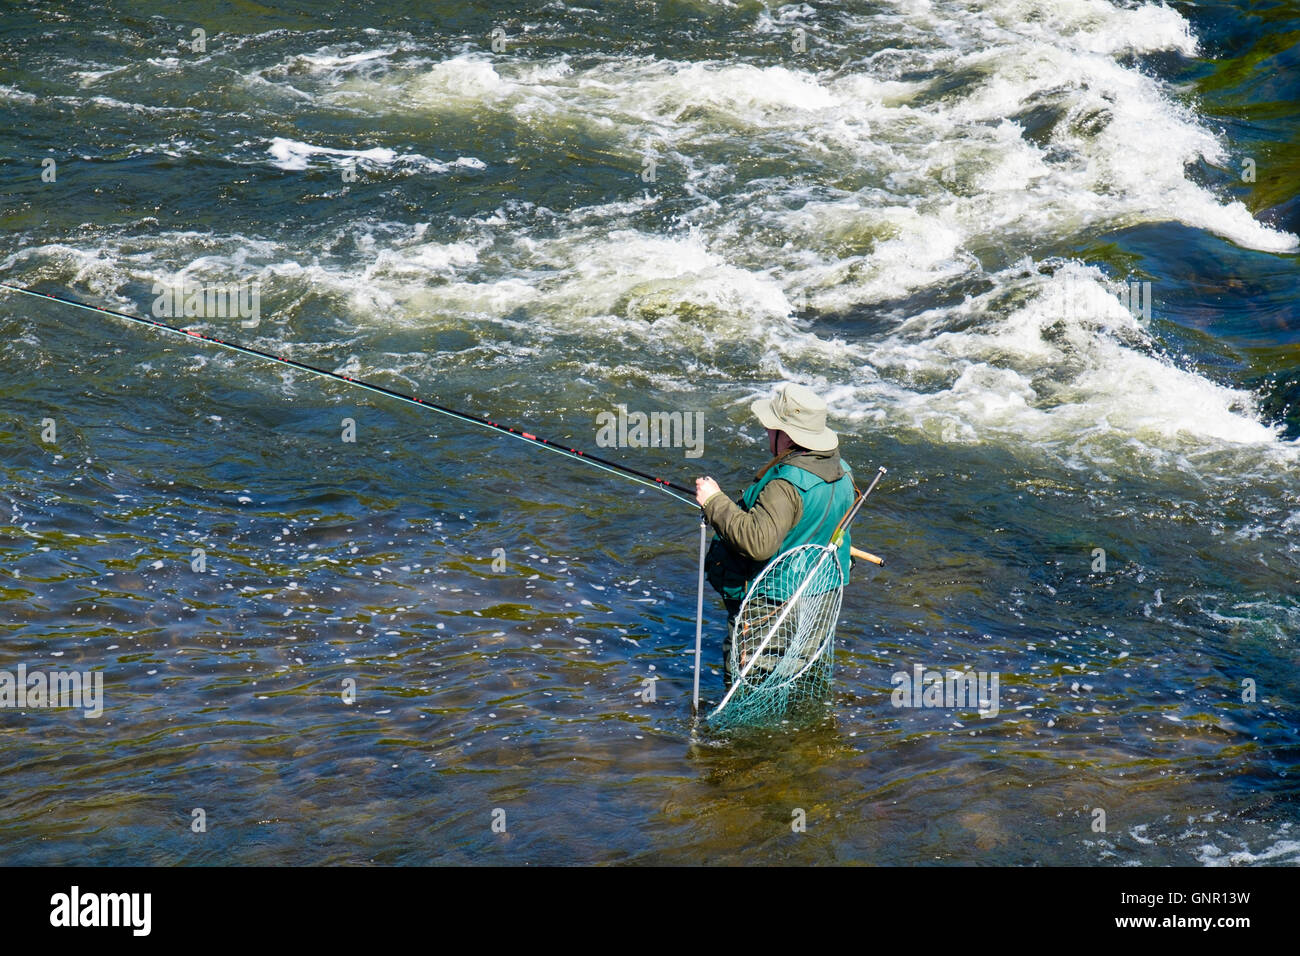 Angler standing in water below a weir fly fishing for Salmon in River Tweed. Ladykirk Berwickshire Scottish Borders - Stock Image